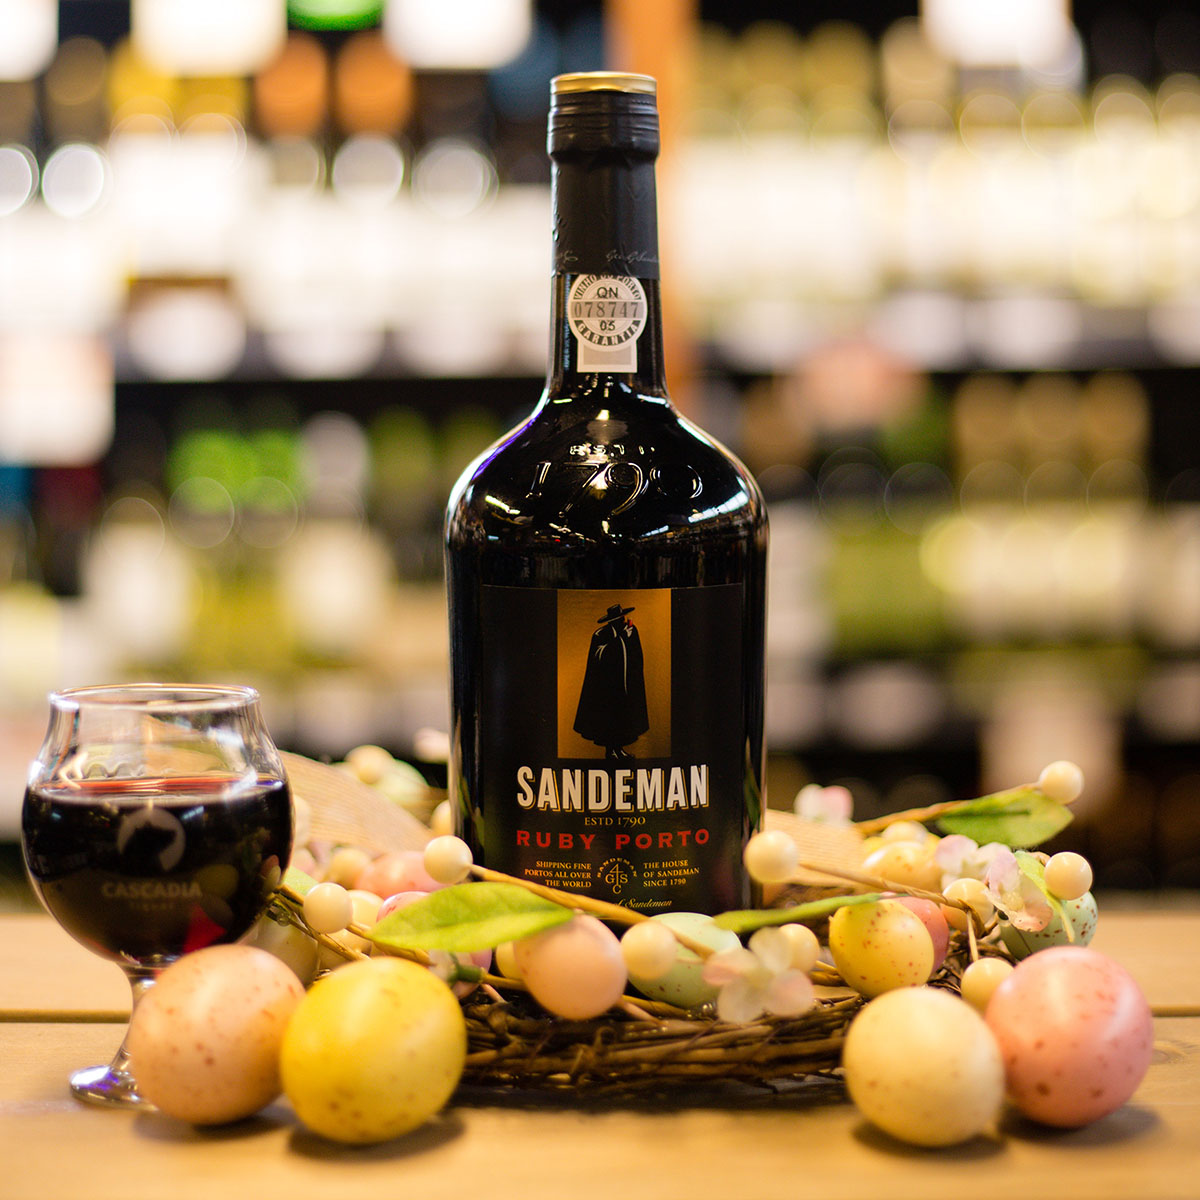 Sandeman Ruby Port - Easter chocolates aren't just for the kids, so go ahead and indulge! Pair those treats with something equally sweet like this fresh and youthful ruby port, packed with cherry, raspberry, cinnamon, and subtle tannins.$22.99 (750 ml) Douro, Portugal